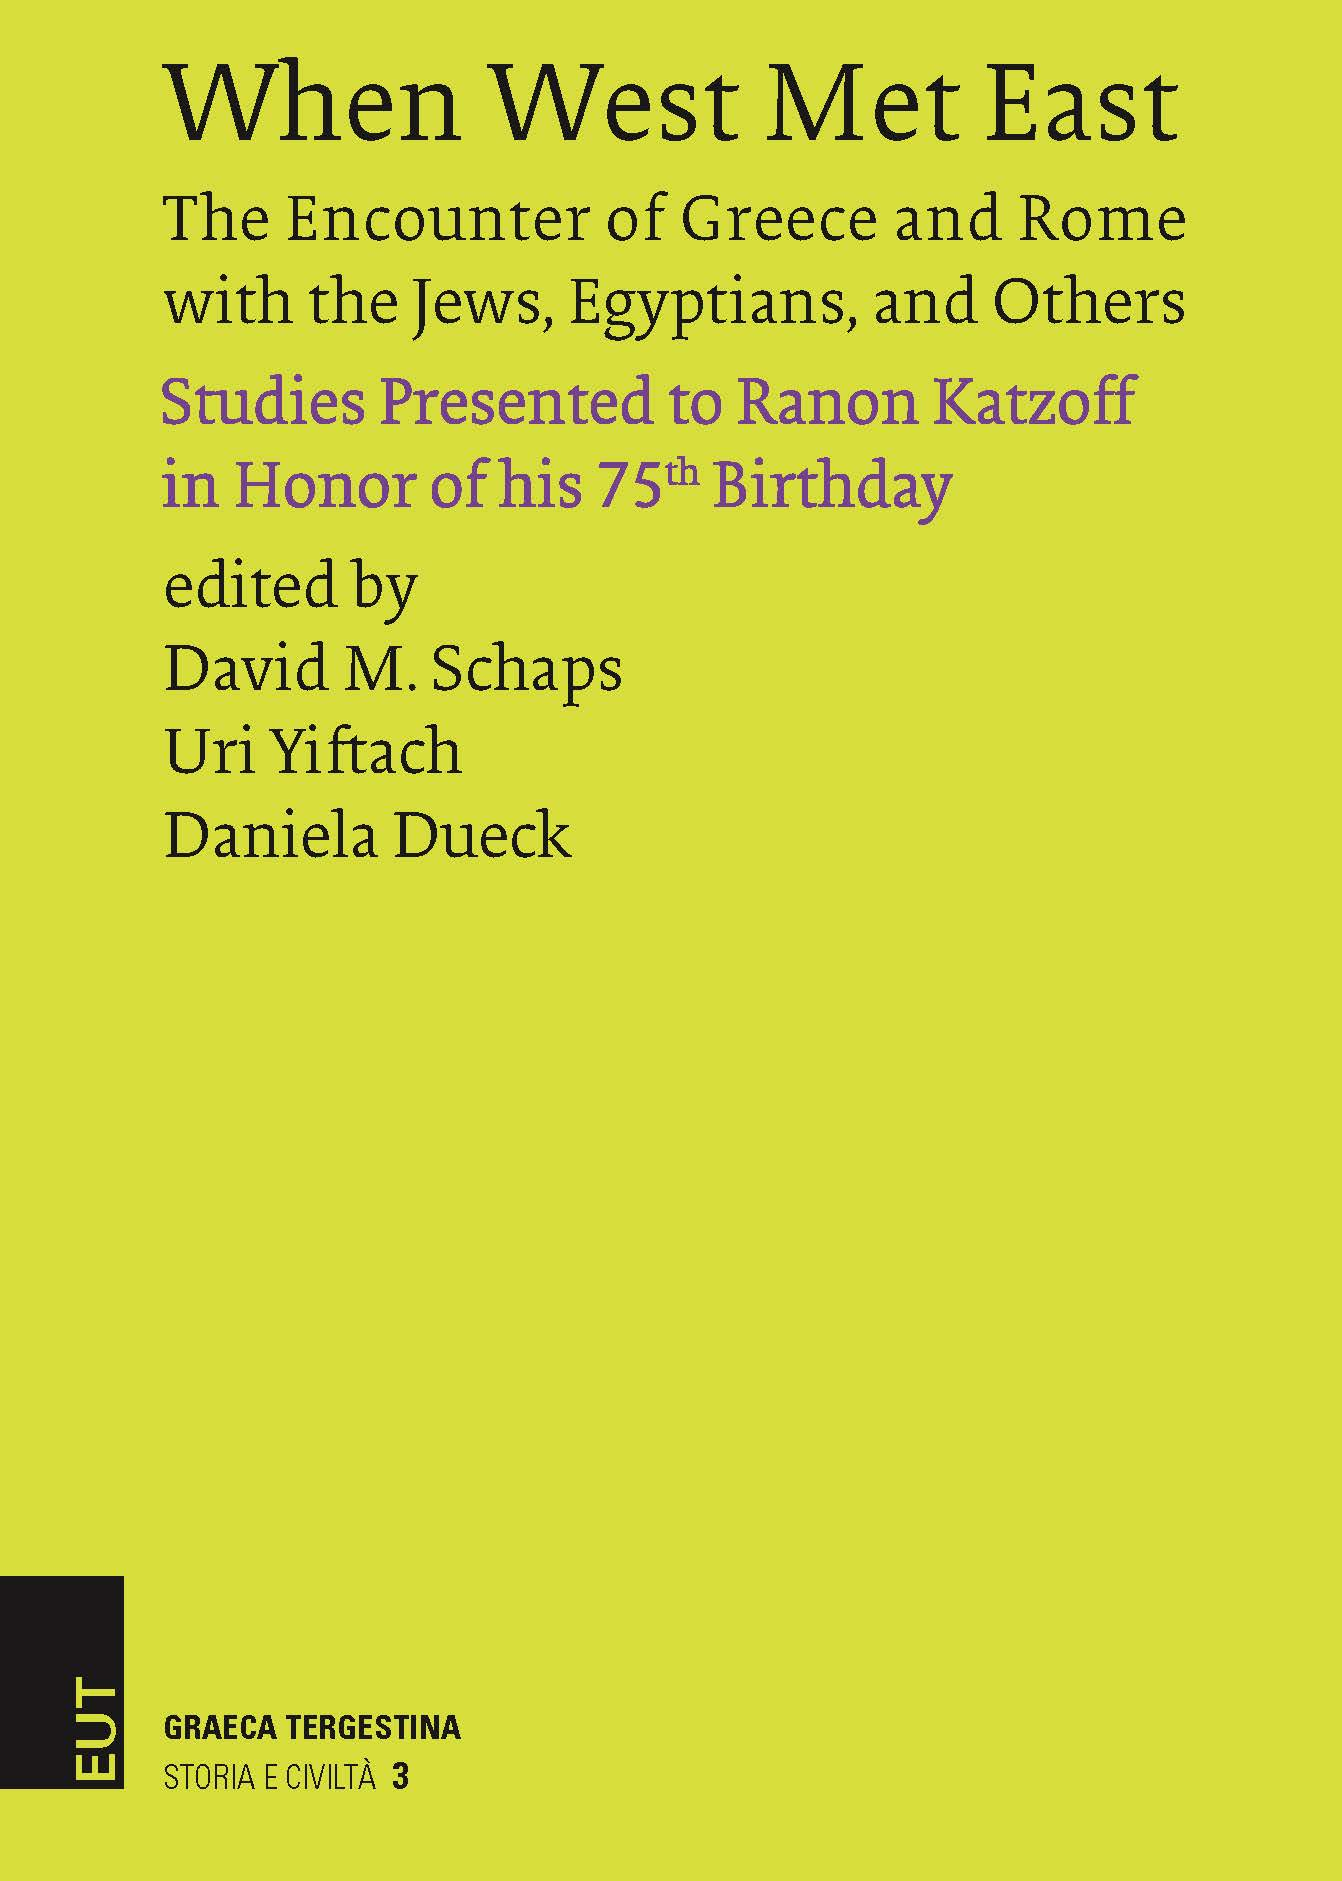 When West Met East. The Encounter of Greece and Rome with the Jews, Egyptians, and Others. Studies Presented to Ranon Katzoff in Honor of his 75th Birthday